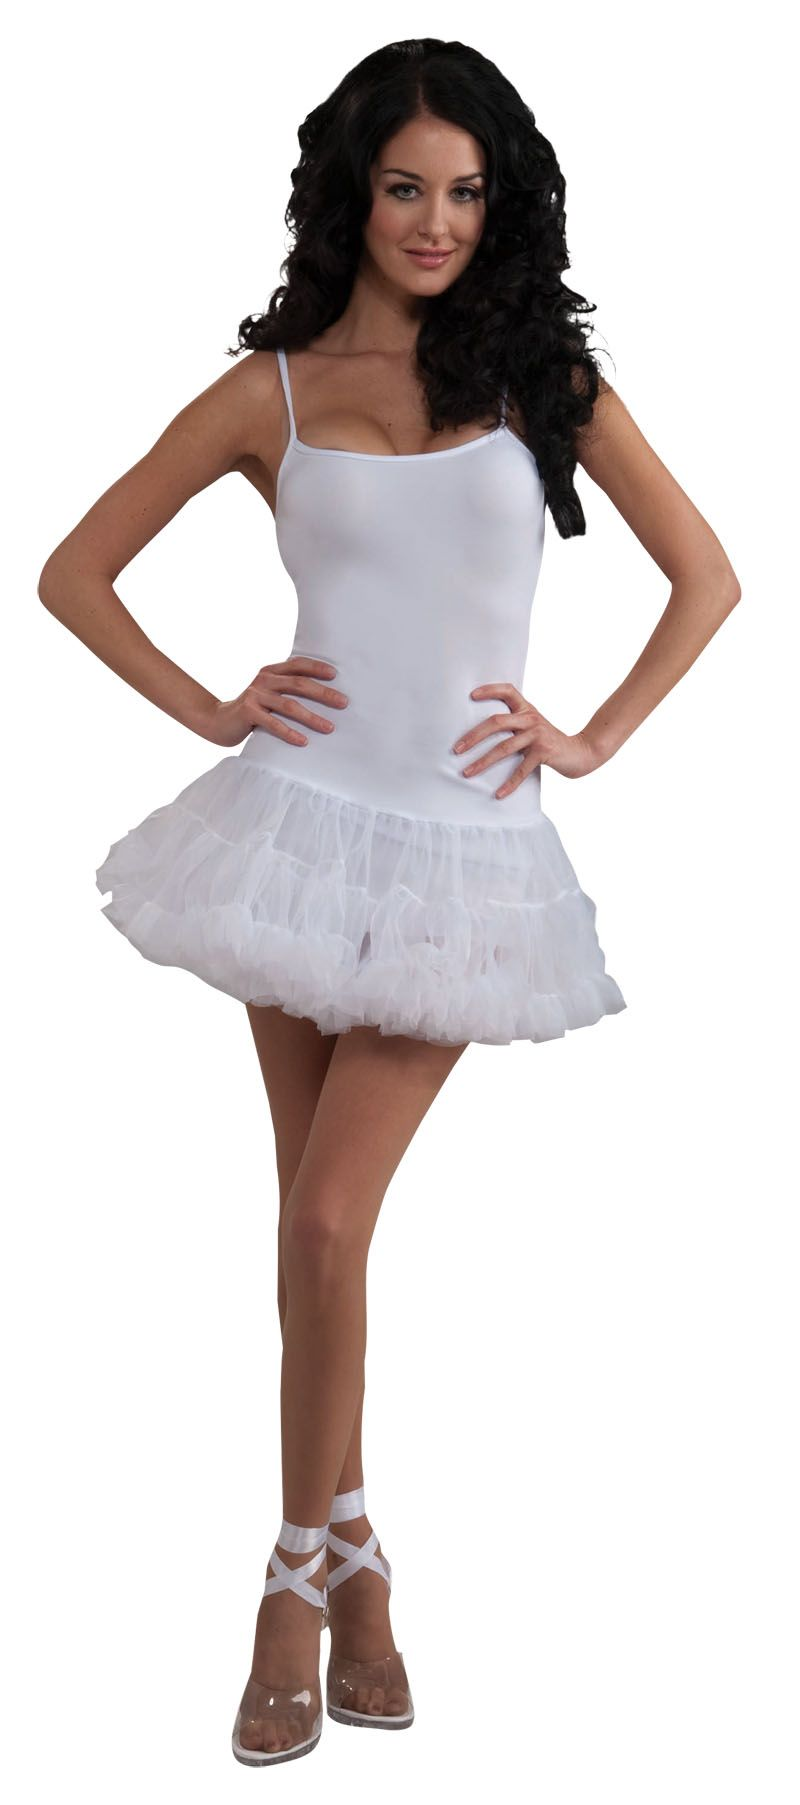 white petticoat dress a versatile fancy dress costume thats great to wear on its own - Halloween Petticoat